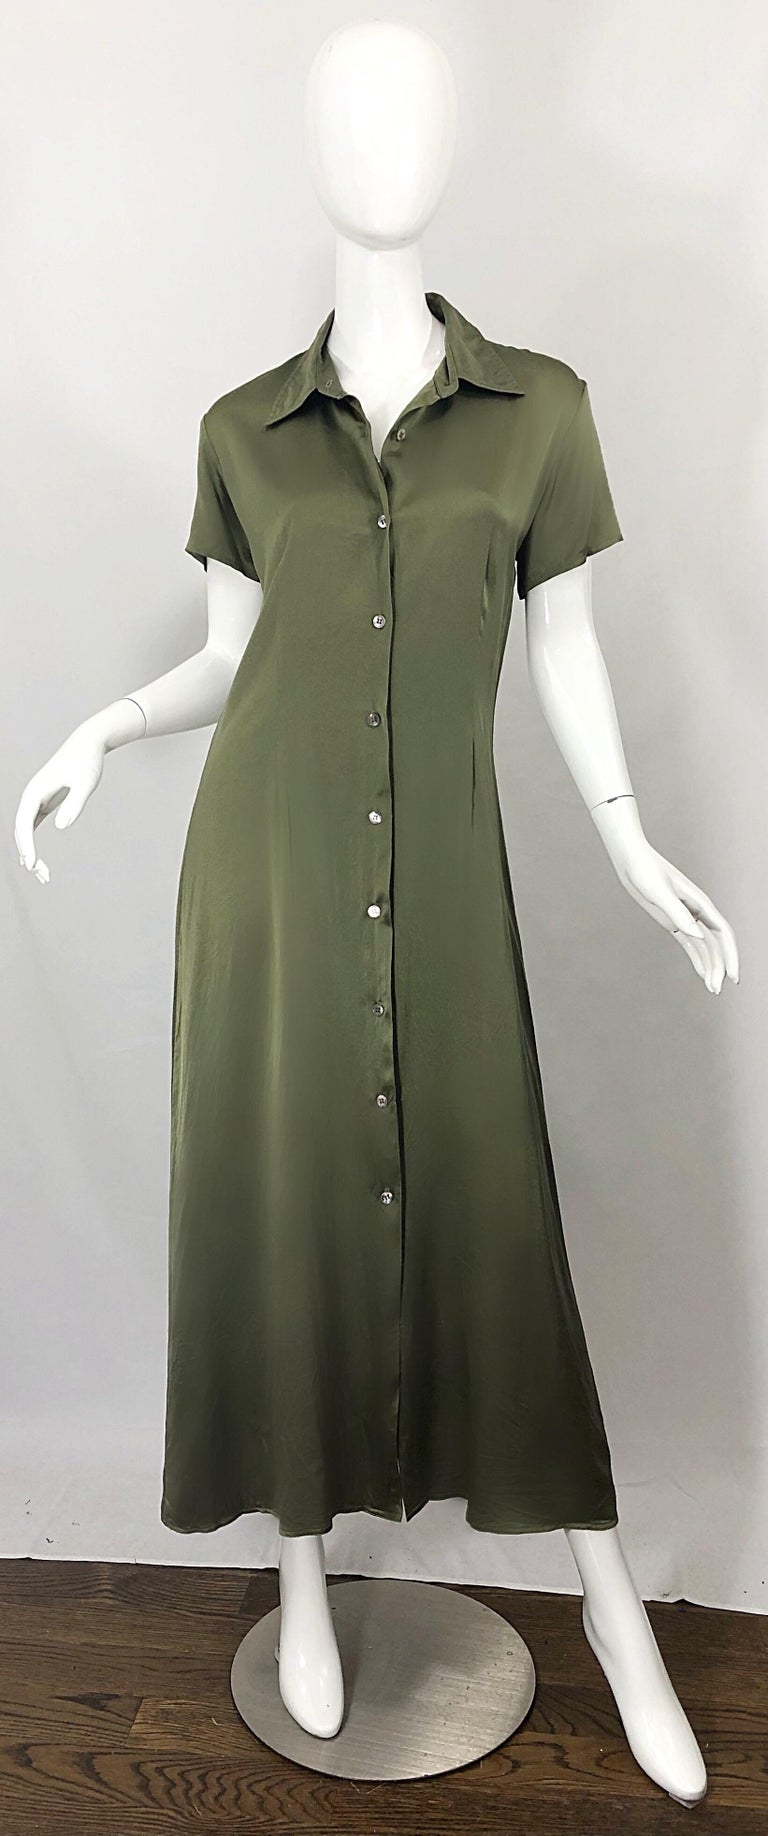 Effortlessly chic late 70s HALSTON olive green liquid silk maxi shirt dress! Features a tailored bodice with a forgiving flirty skirt Buttons up the front, and drapes the body beautifully. Can easily be dressed up or down, and is perfect for either